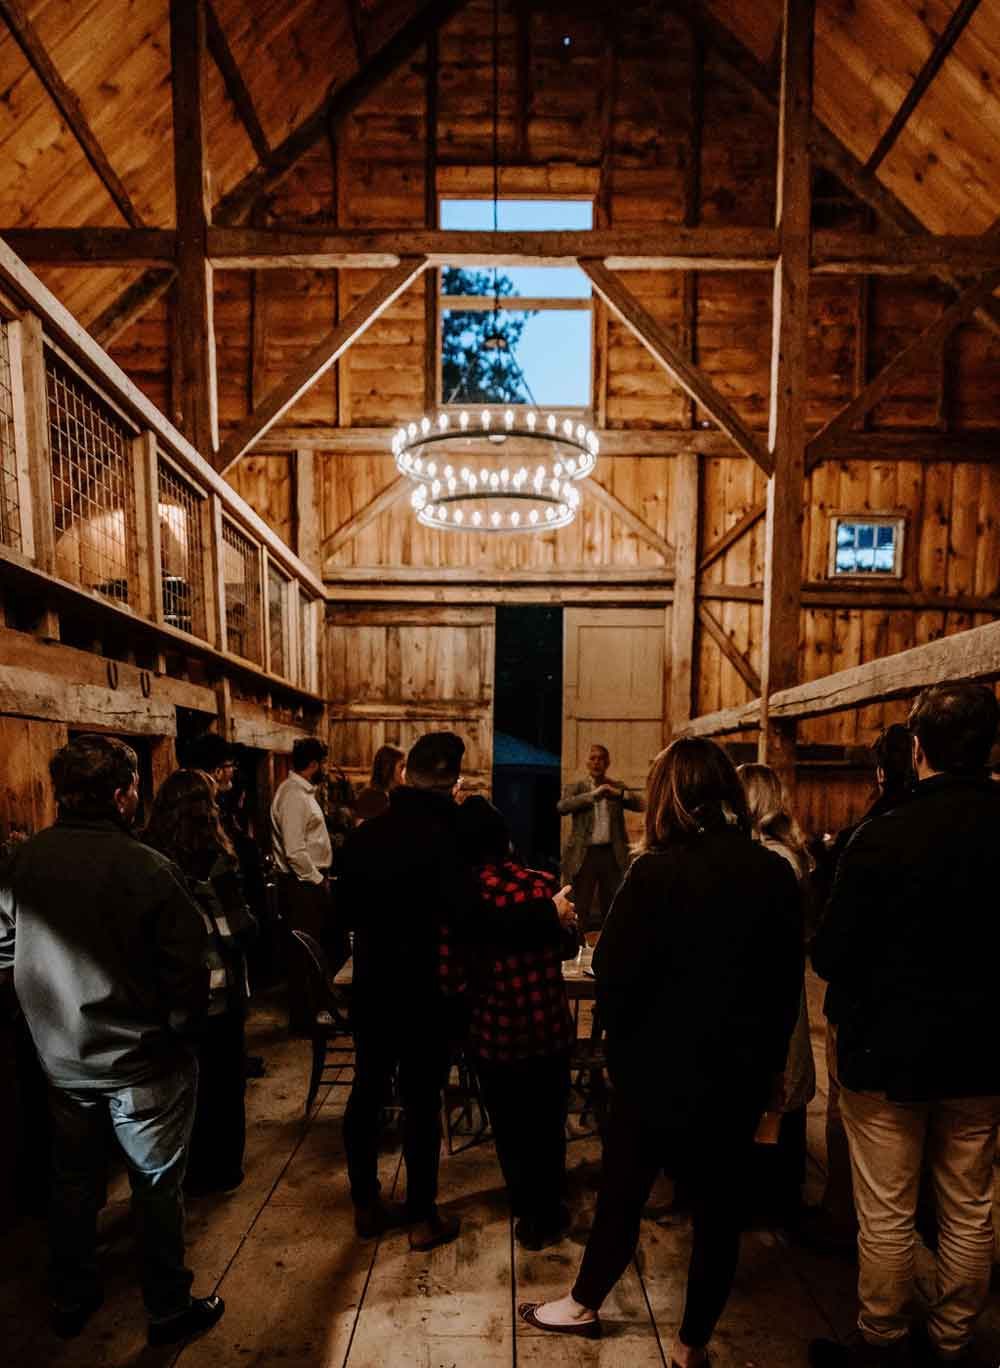 Inside the restored barn at the Squire Tarbox Inn